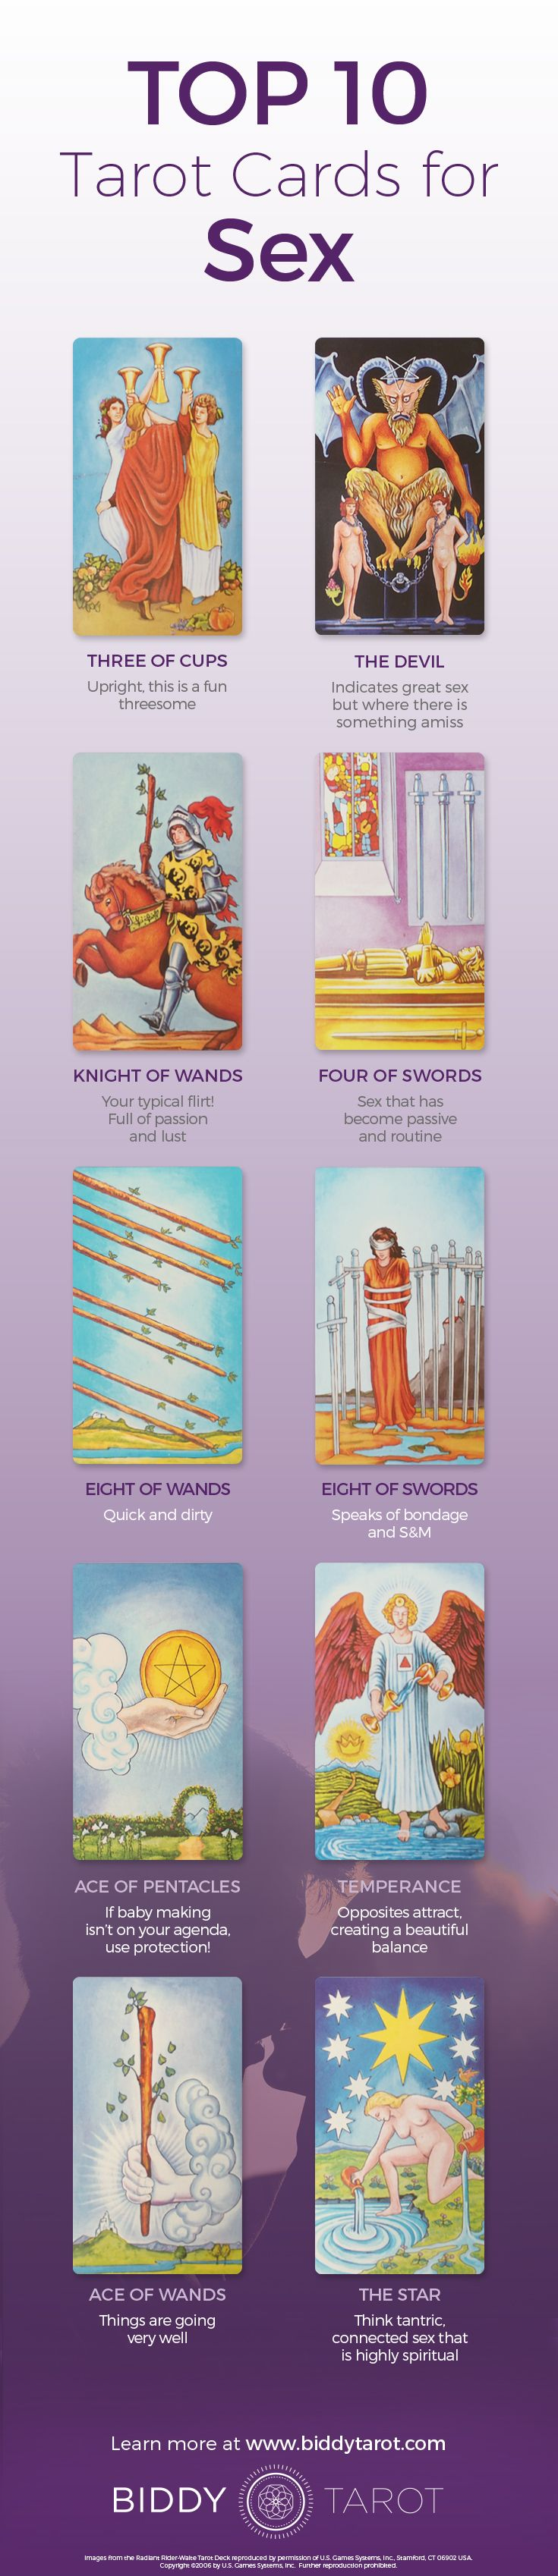 Things are about to heat up when these #Tarot cards appear. Expect things to get #fun and frisky. Download your free copy of my Top 10 Tarot Cards for love, finances, career, life purpose and so much more at https://www.biddytarot.com/top-ten-cards-ebook/ It's my gift to you!